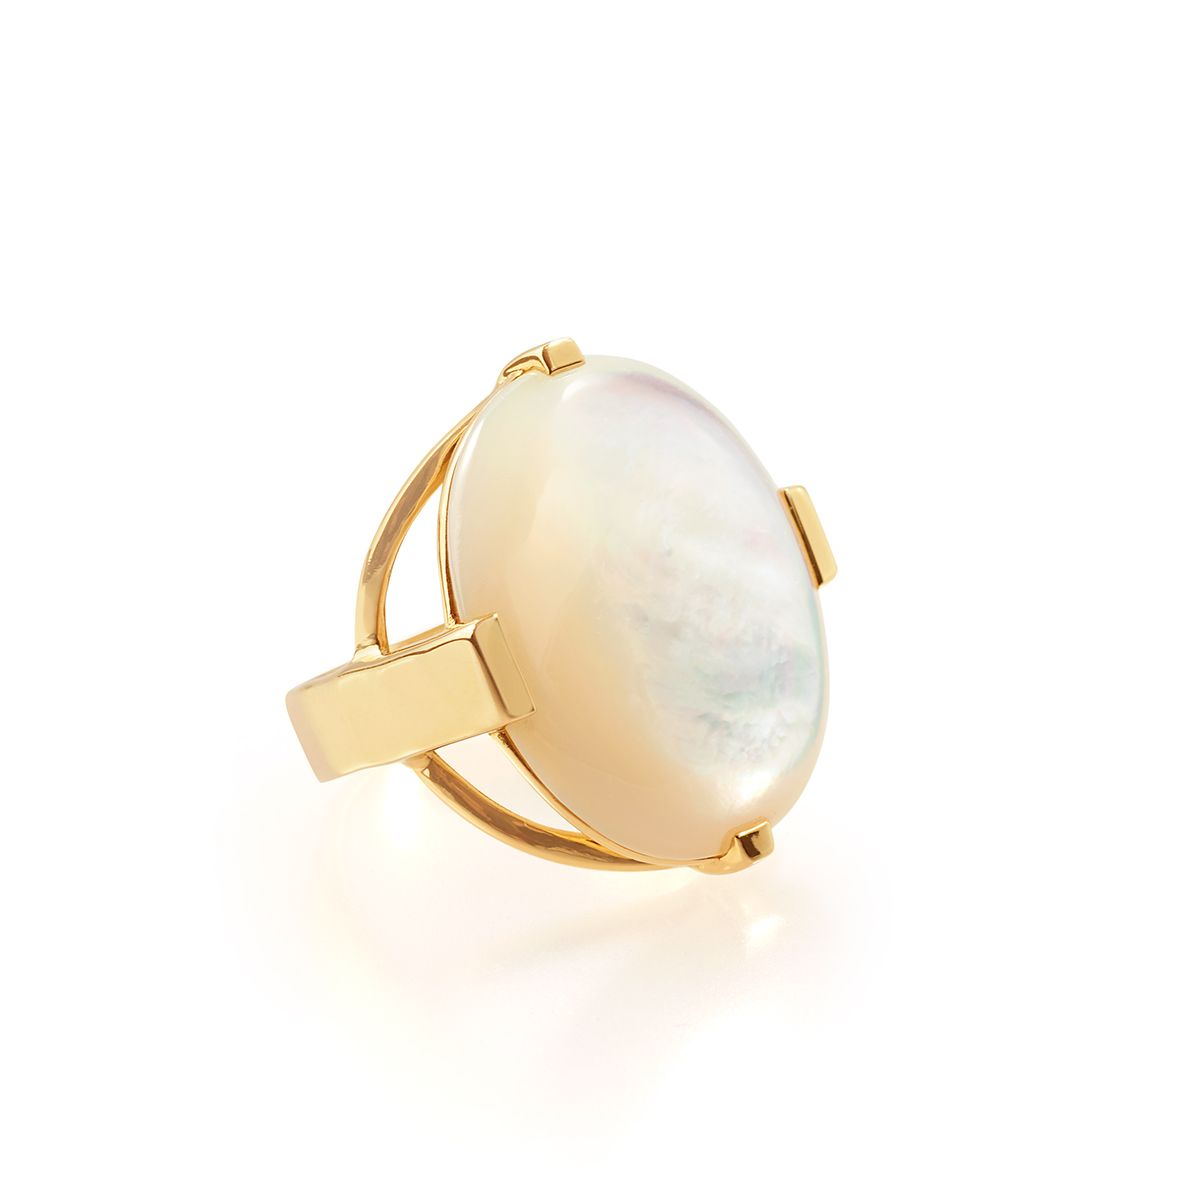 Ippolita Rock Candy Gelato 18k Mother-of-Pearl Ring, Size 6